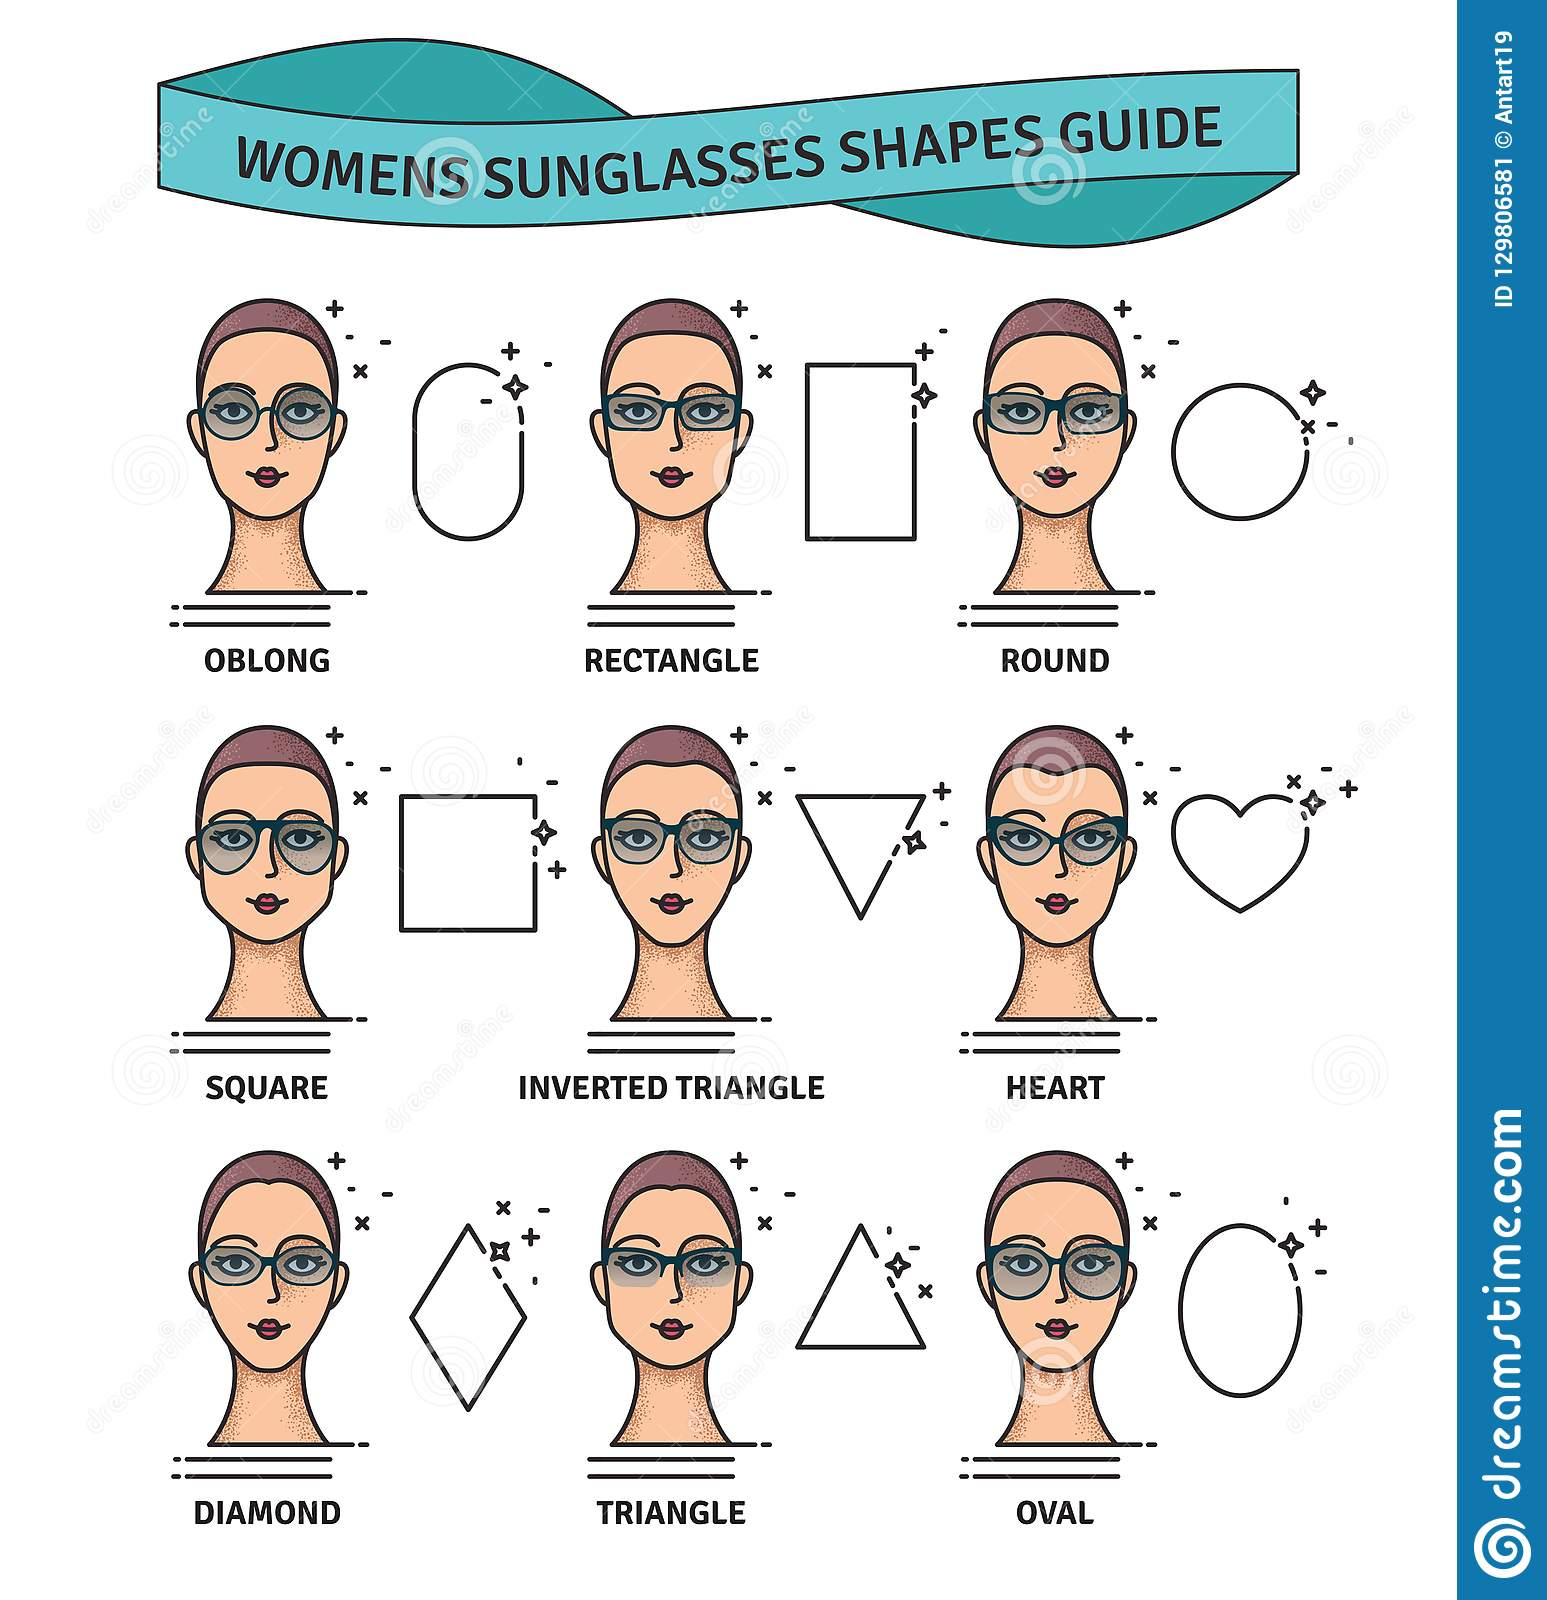 fa5aff2b6c8 Sunglasses shapes guide. Women`s sunglasses shapes matched with face shape.  Various forms of sunglasses.